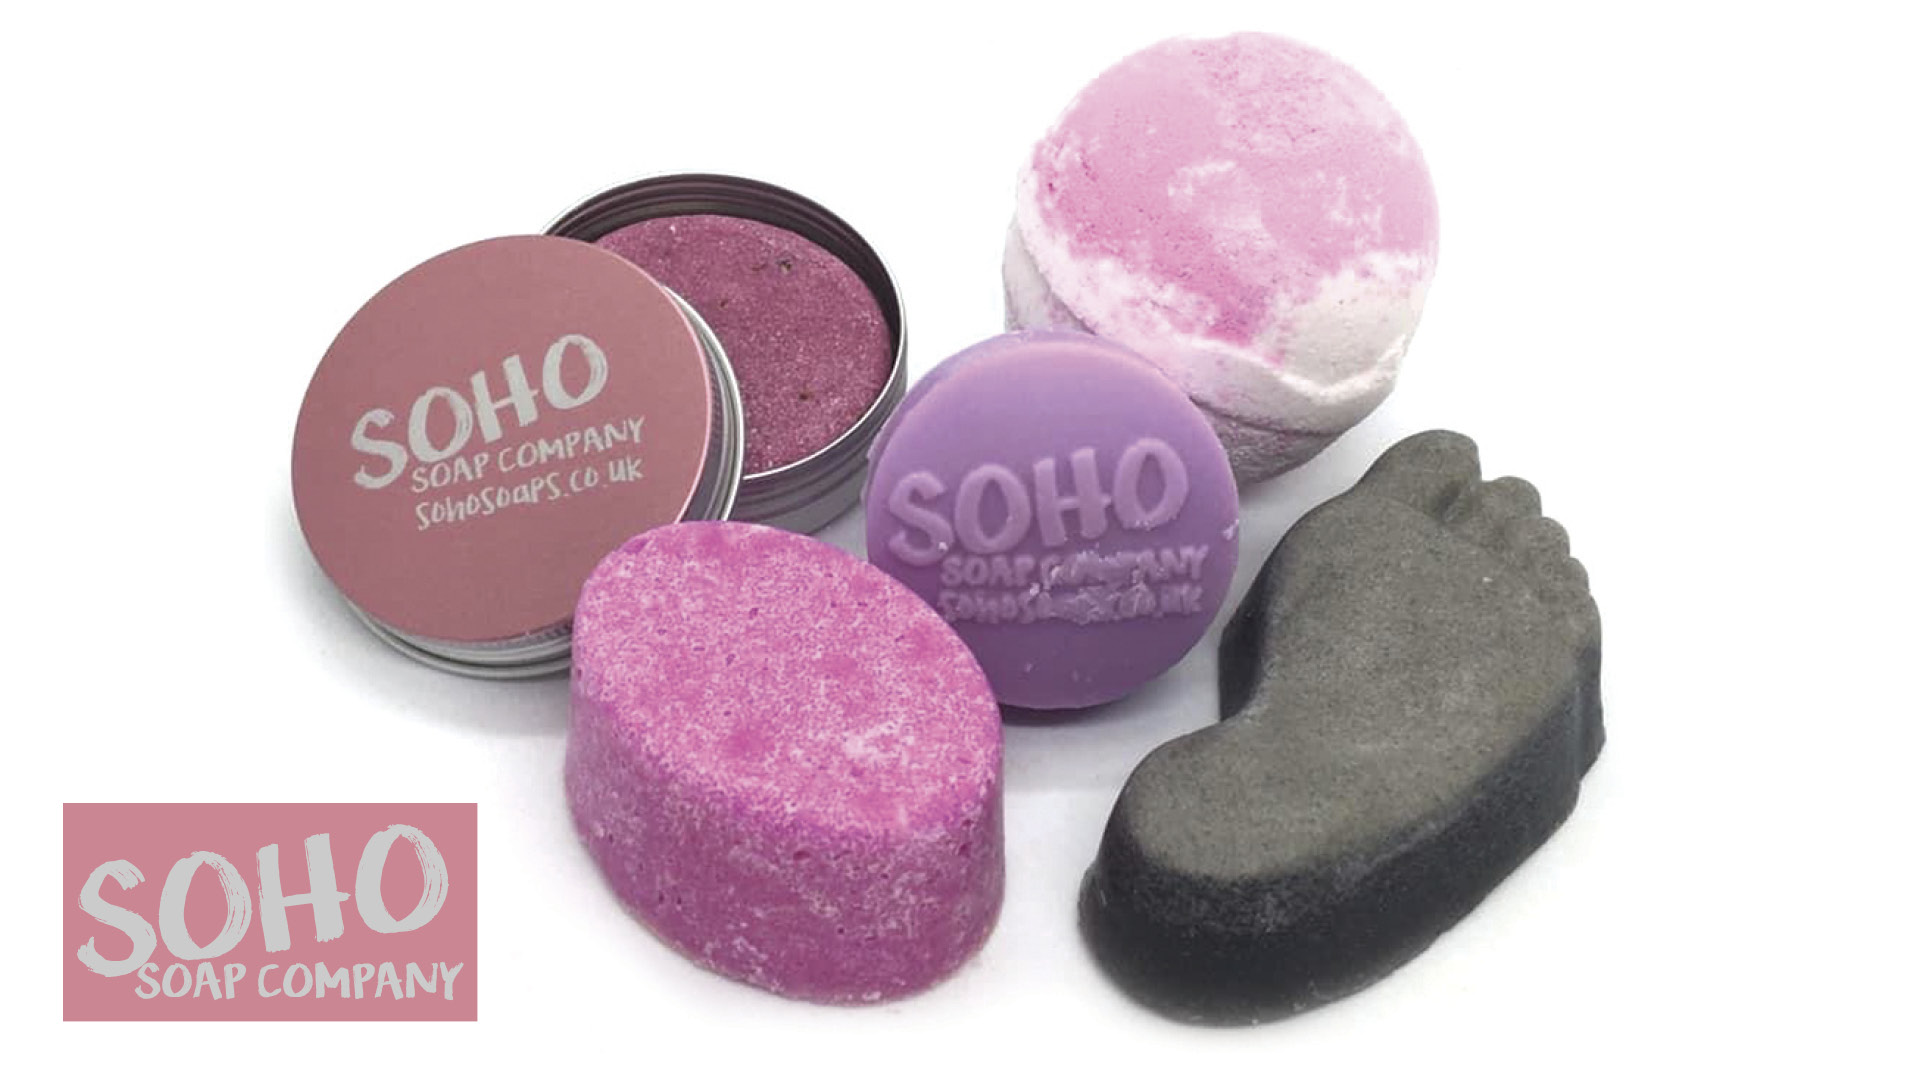 Win one of two Soho Soaps gift box sets Worth £100 each!